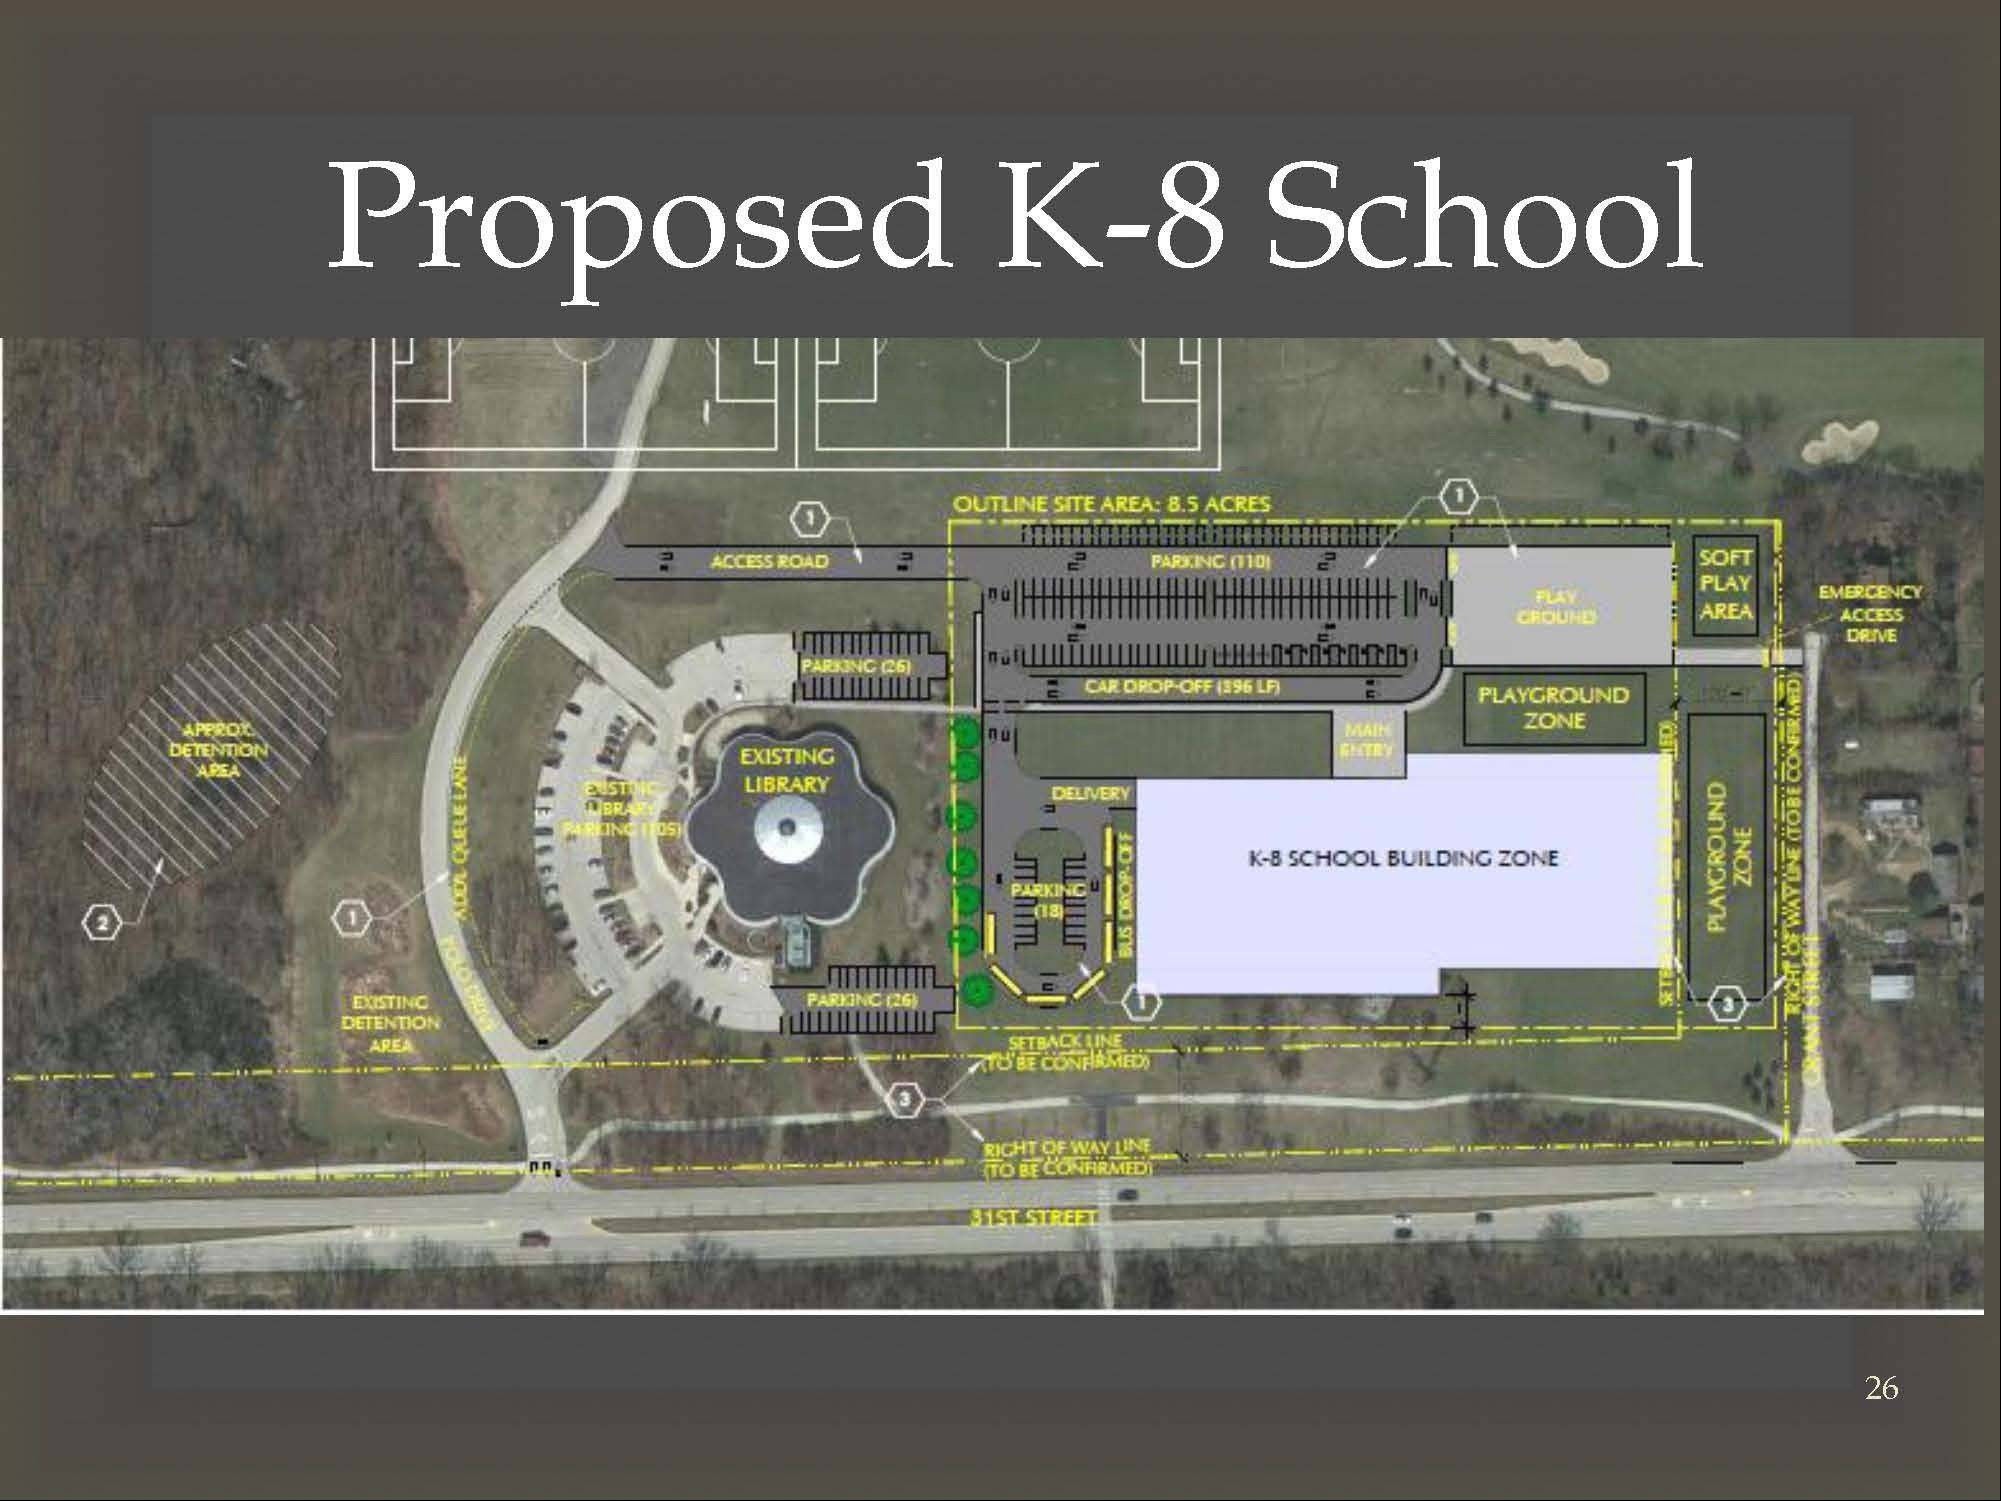 School building costs worry Oak Brook residents